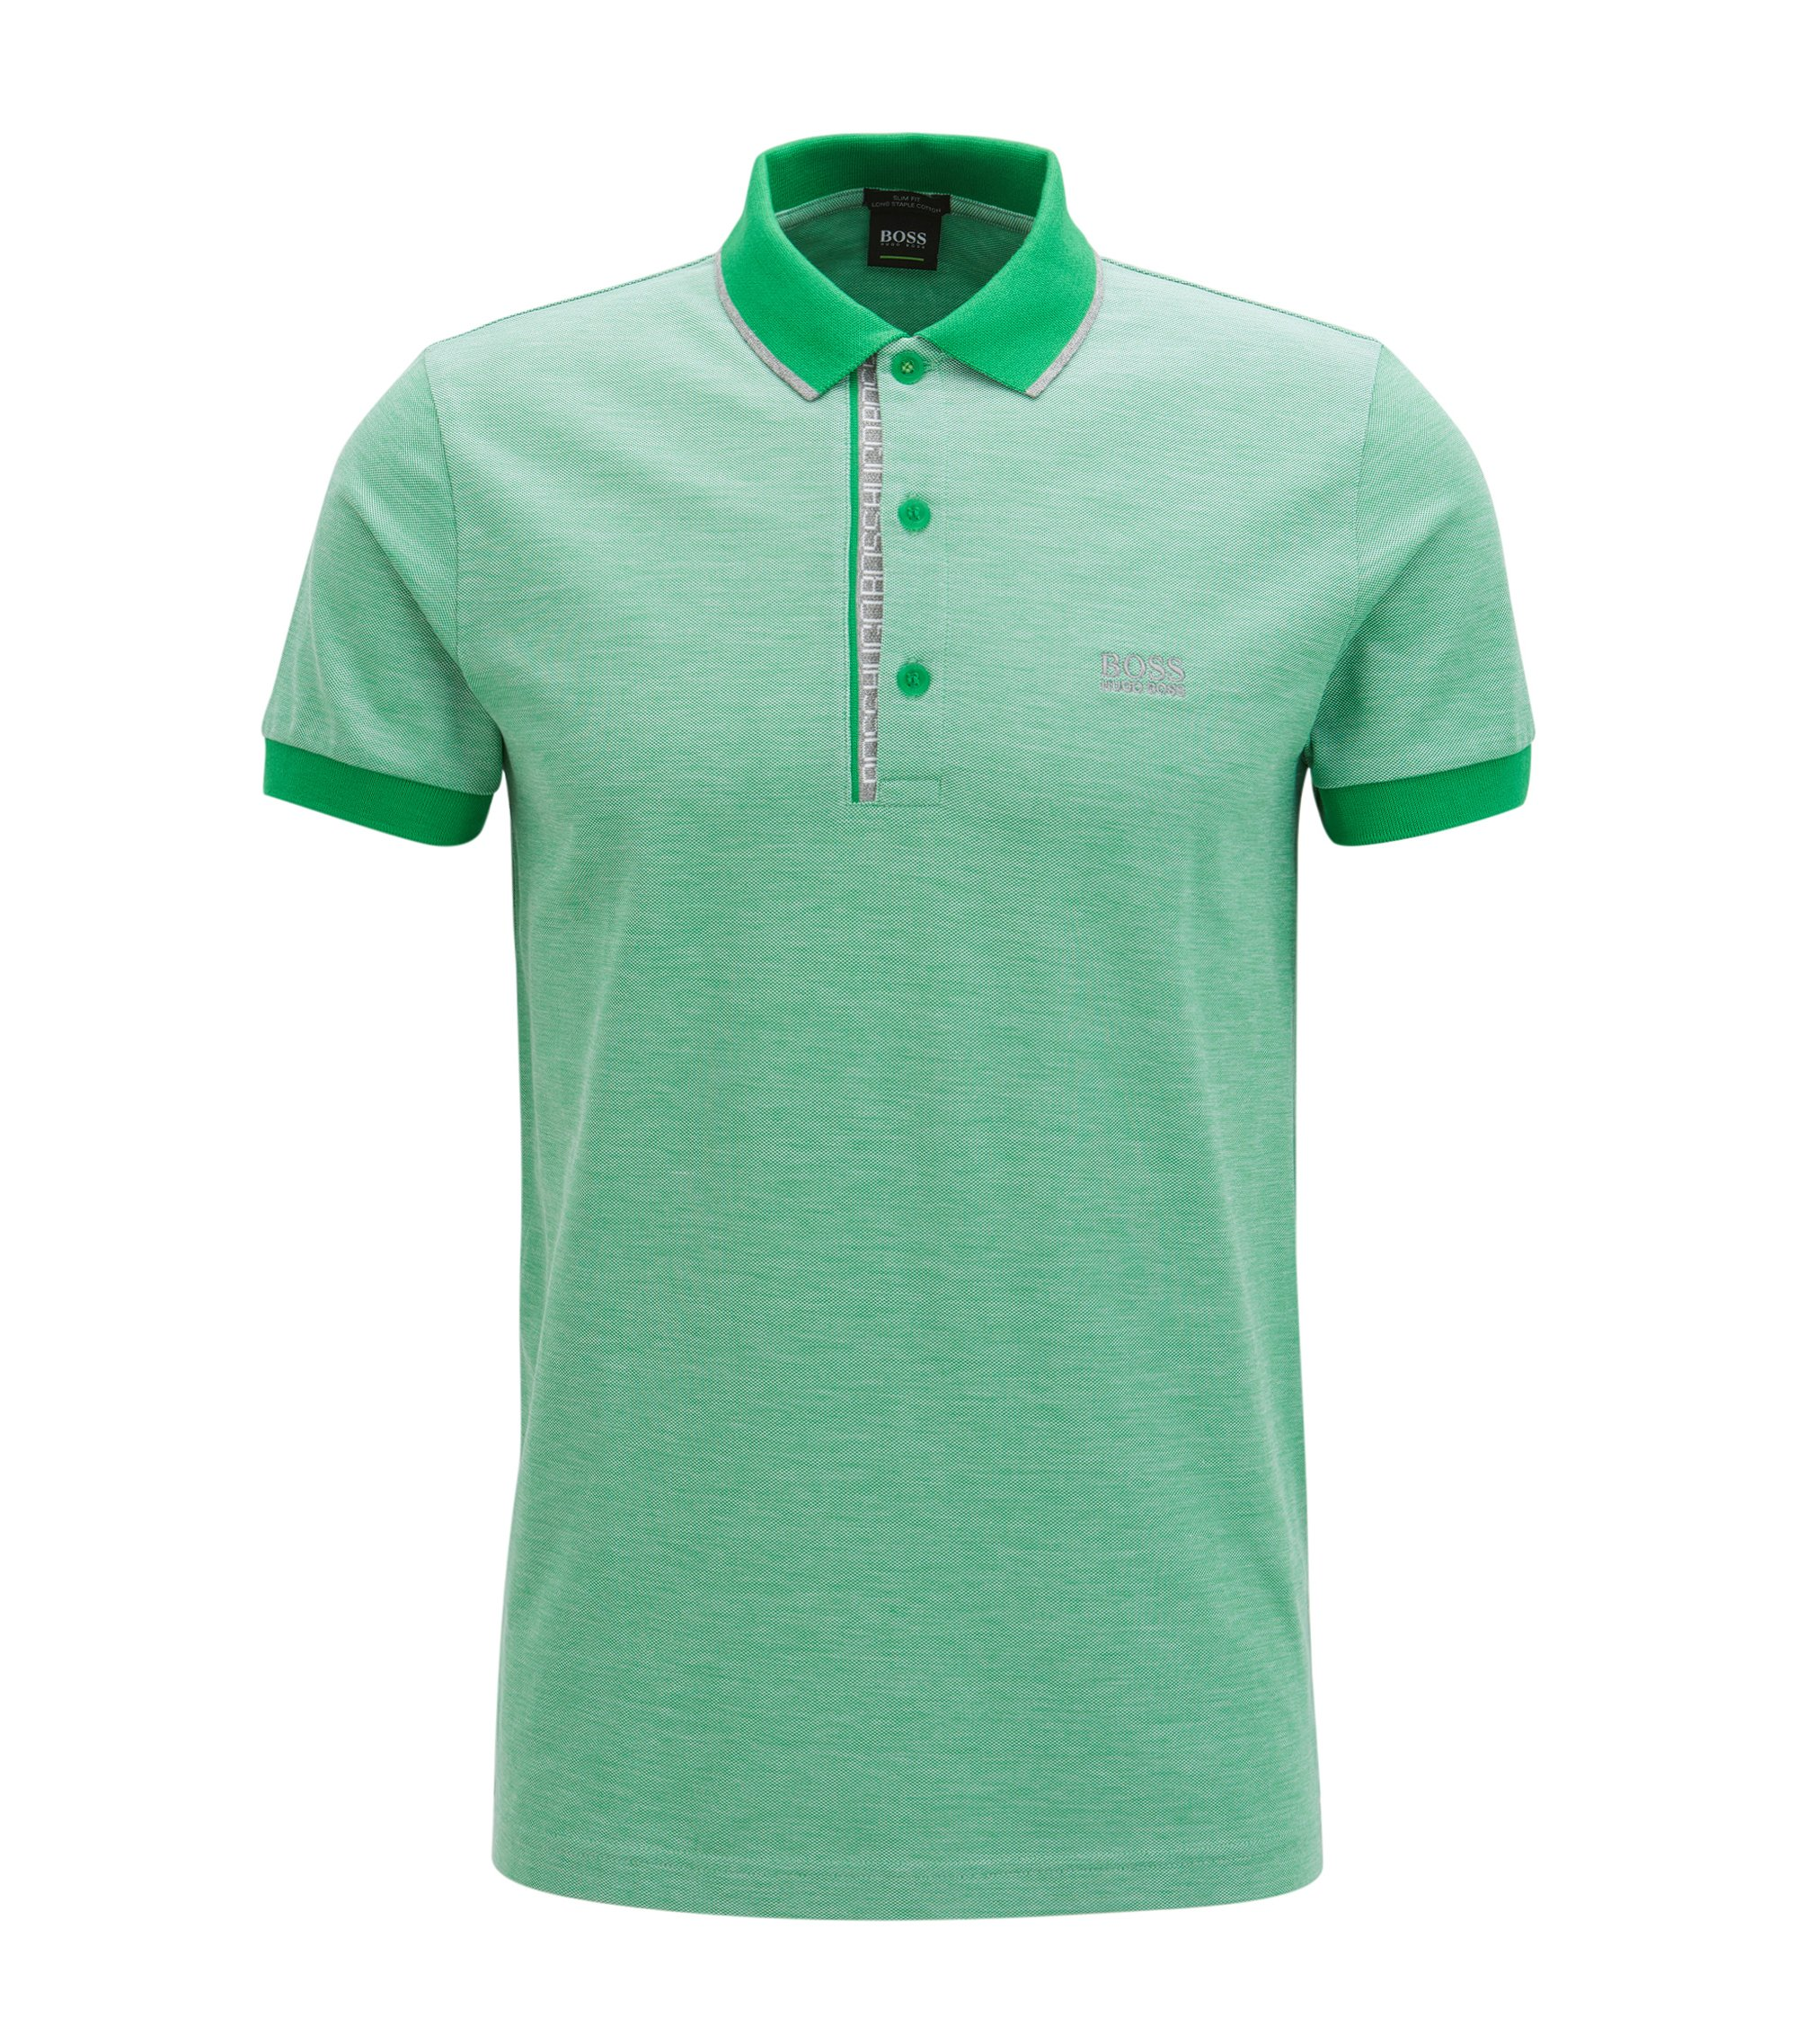 Oxfotd Cotton Polo Shirt, Slim Fit | Paule, Green